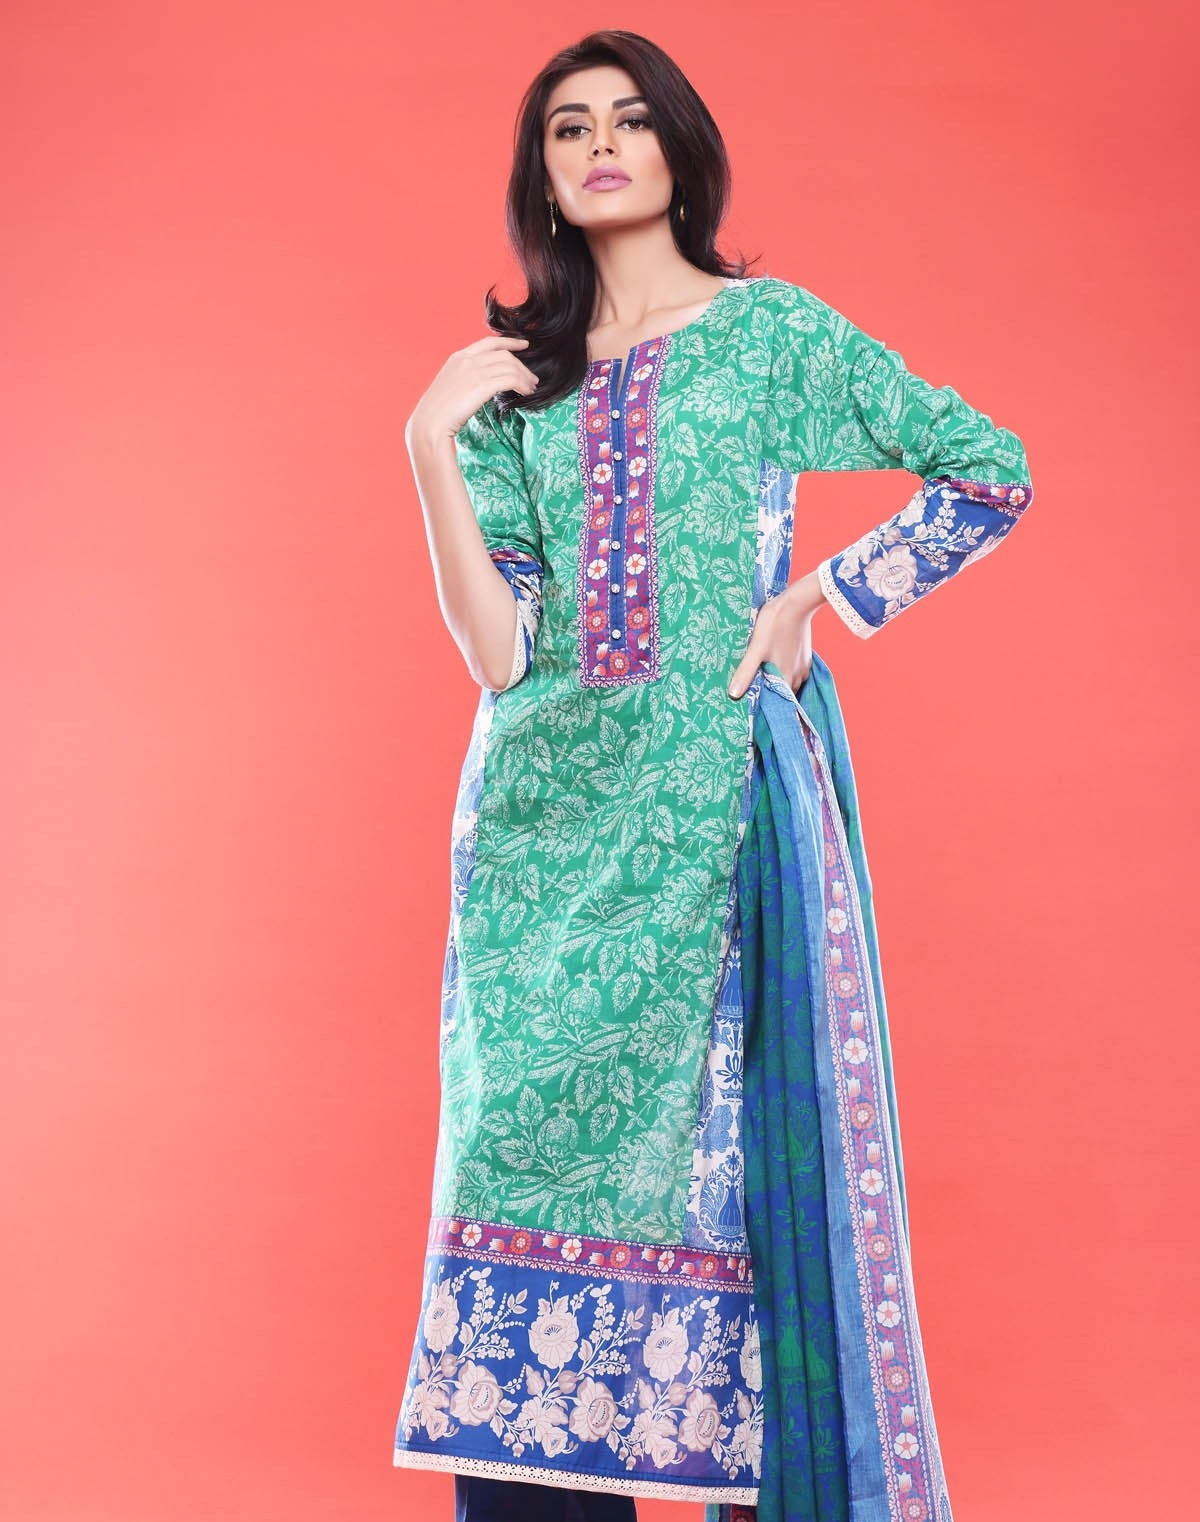 Khaadi-Lawn-Summer-Collection-2015 (17)